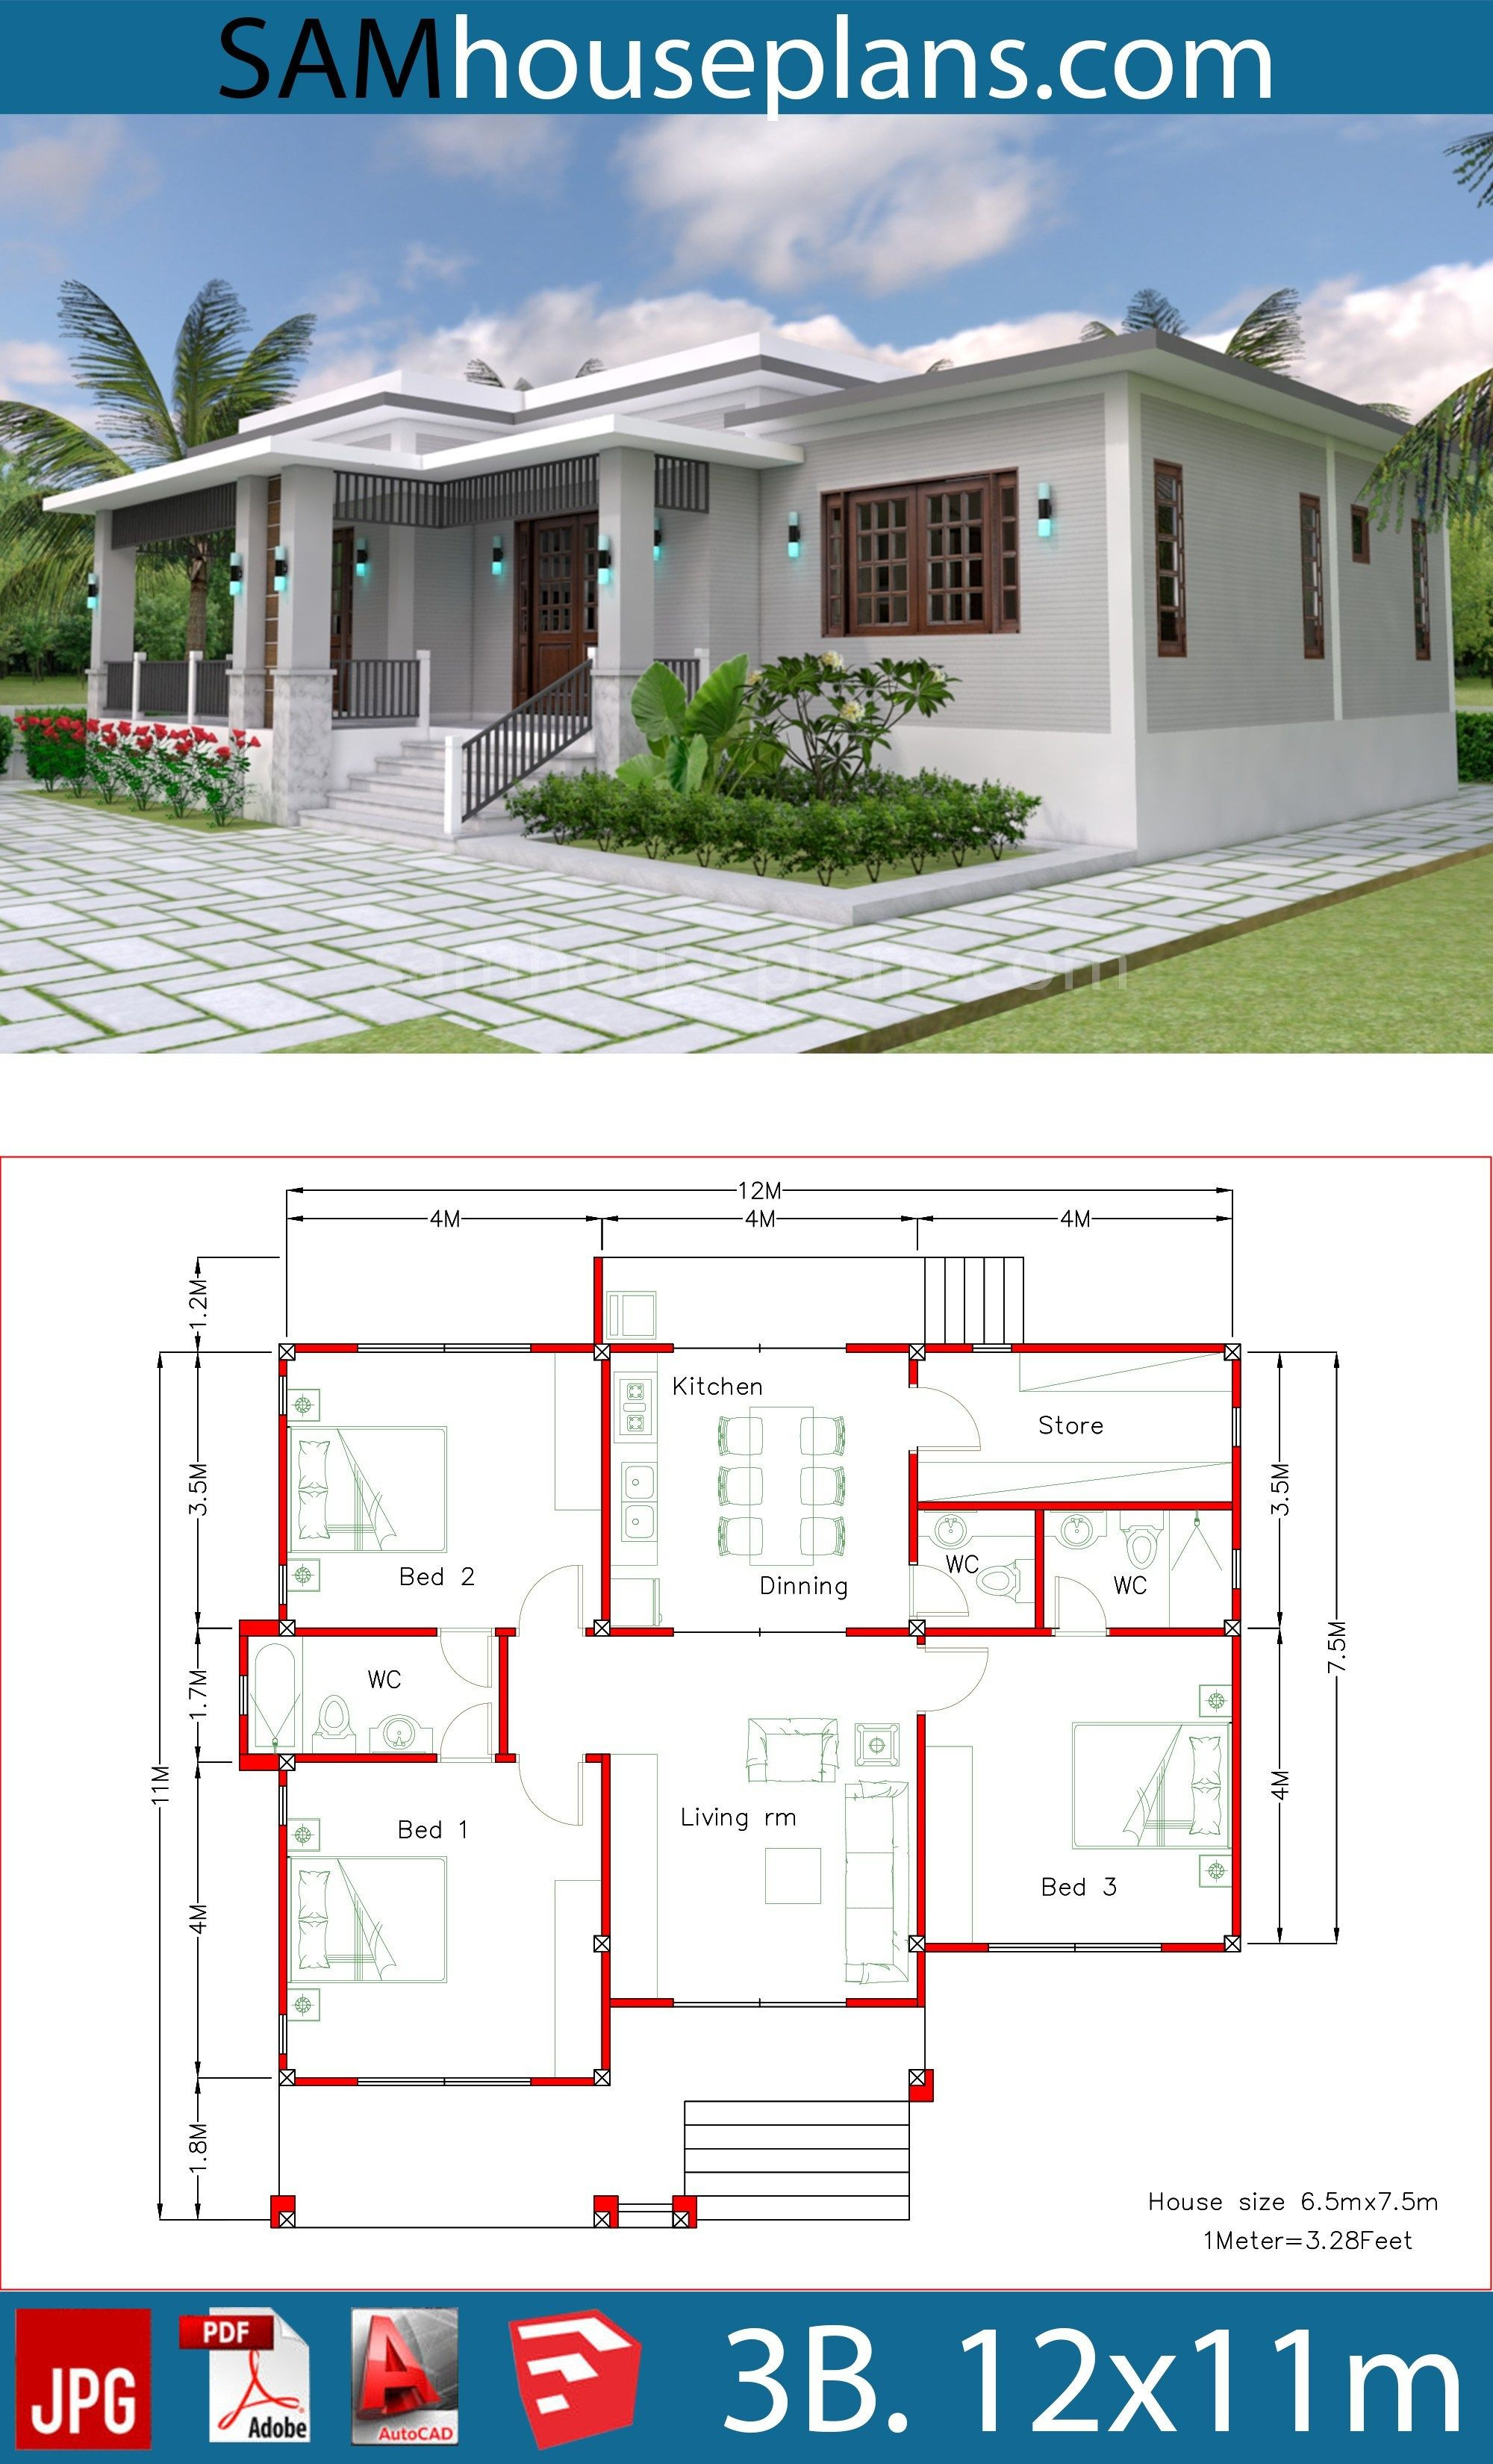 Simple House Models Pictures New House Plans 12x11m with 3 Bedrooms In 2020